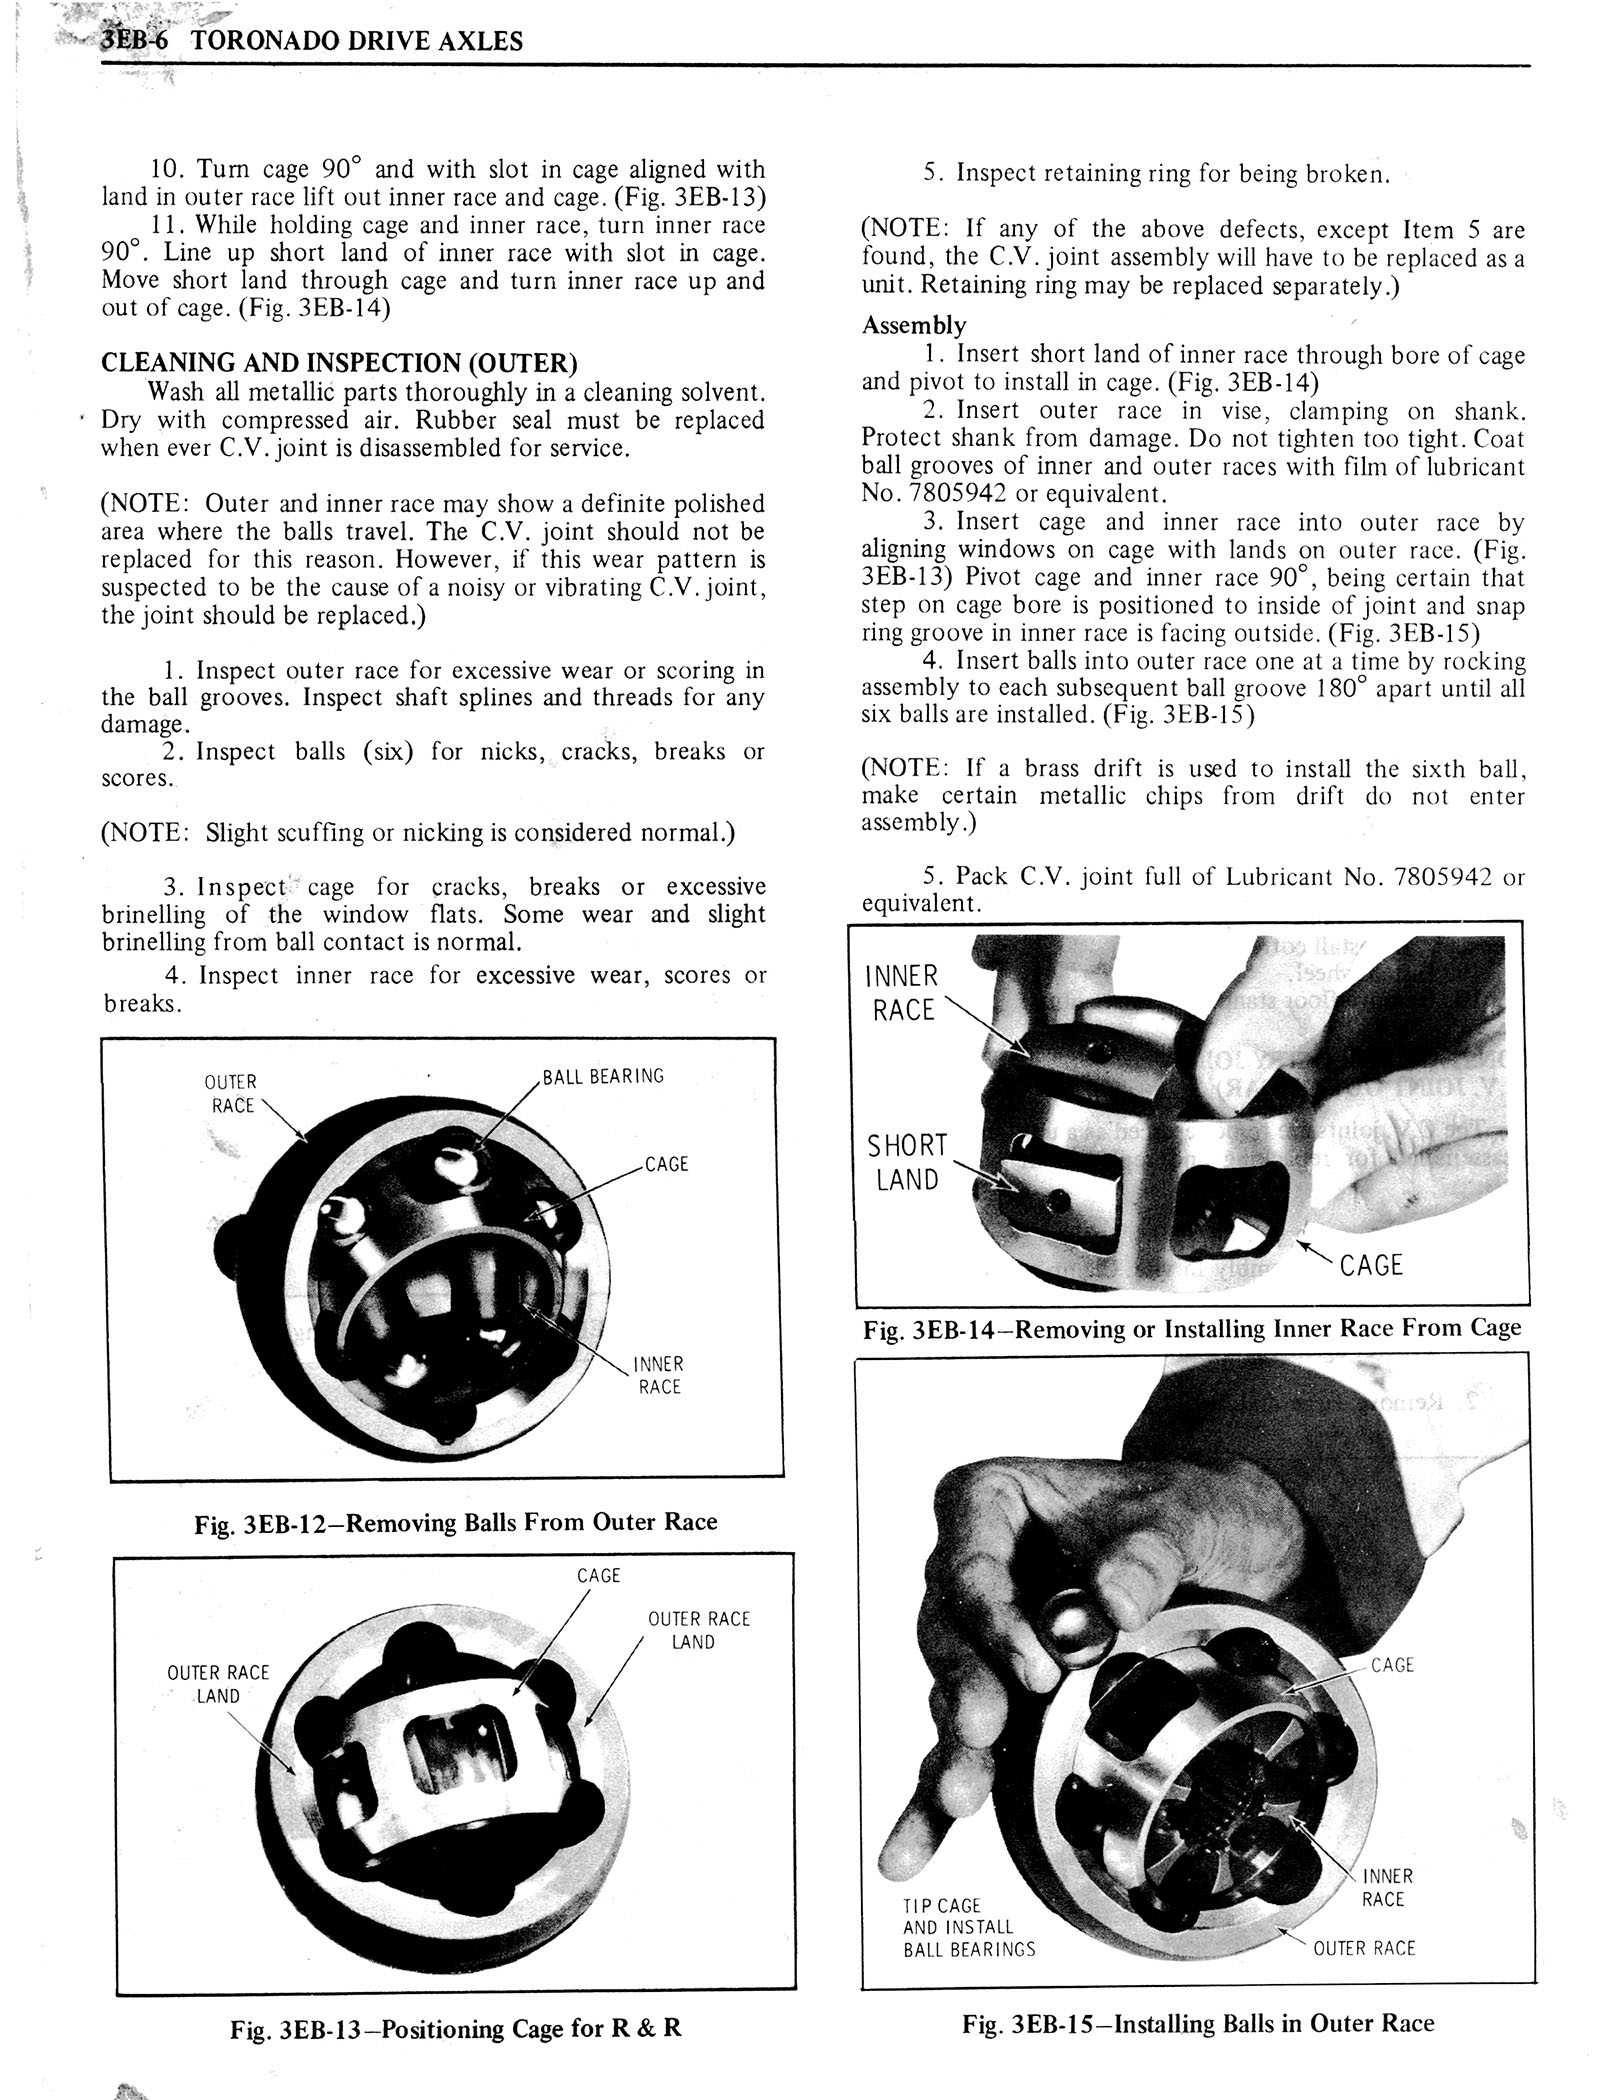 1976 Oldsmobile Service Manual page 230 of 1390